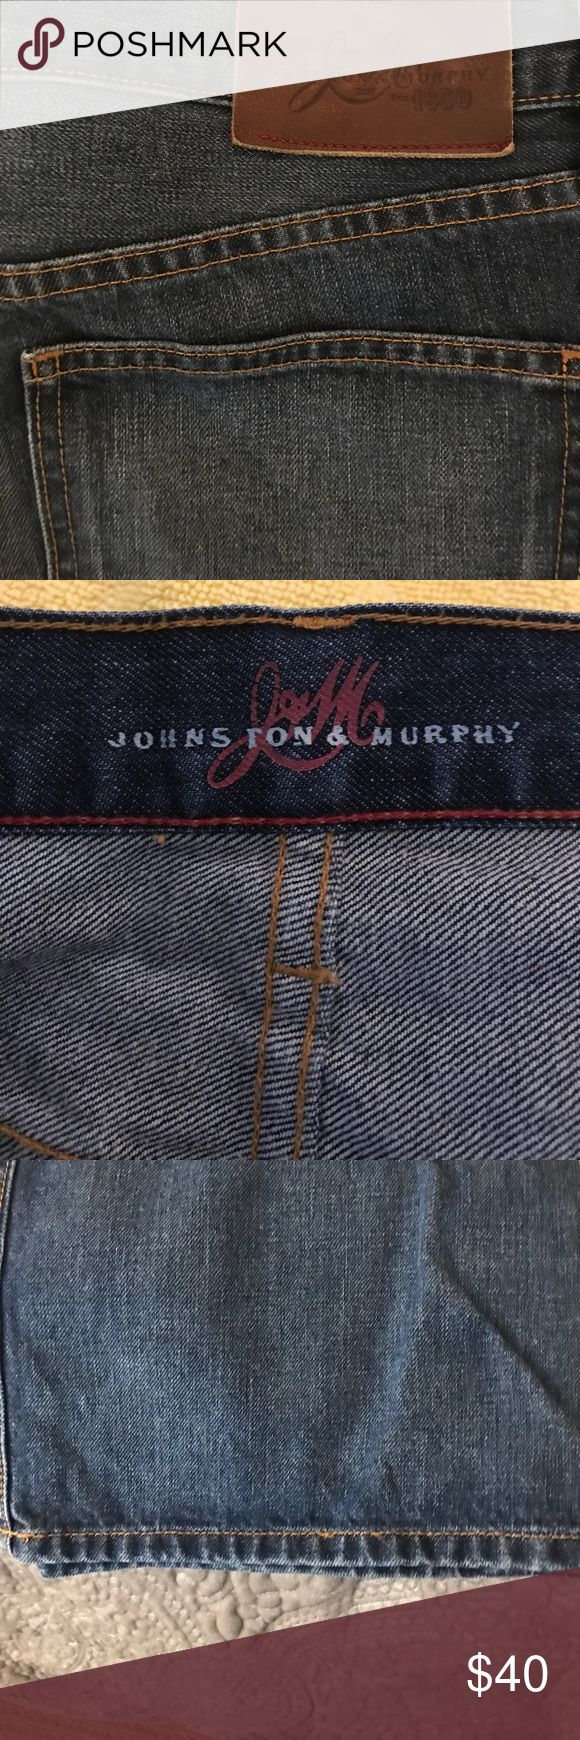 Johnston & Murphy denim jeans, relaxed fit 38/34 Johnston & Murphy relaxed fit jeans 38/34 Johnston & Murphy Jeans Relaxed